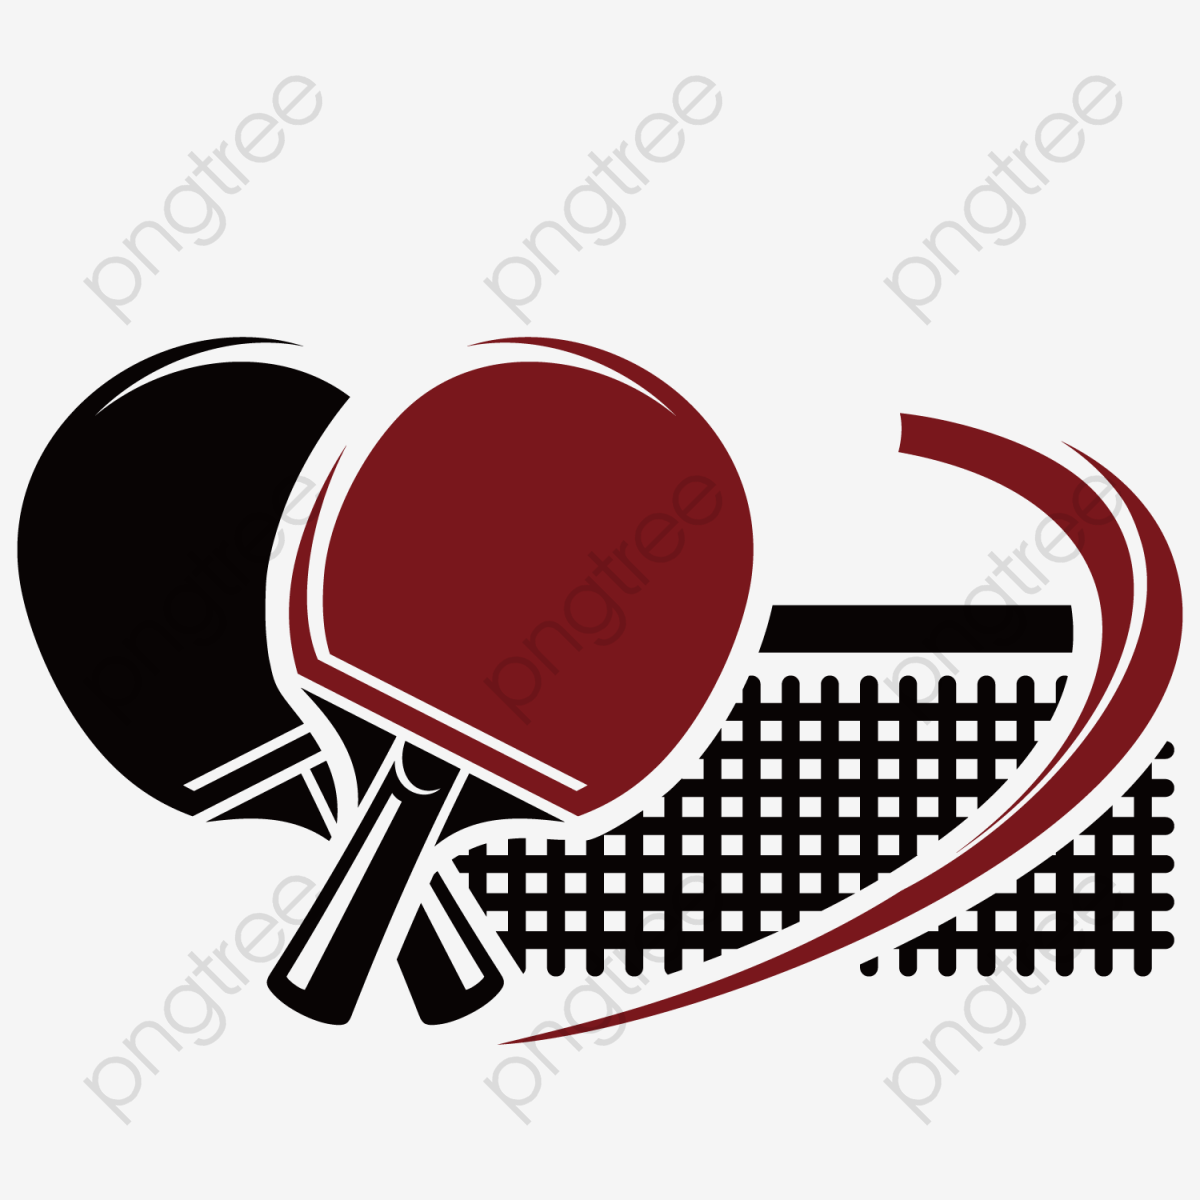 Transparent Table Tennis Png Format Image With Size 1200 1200